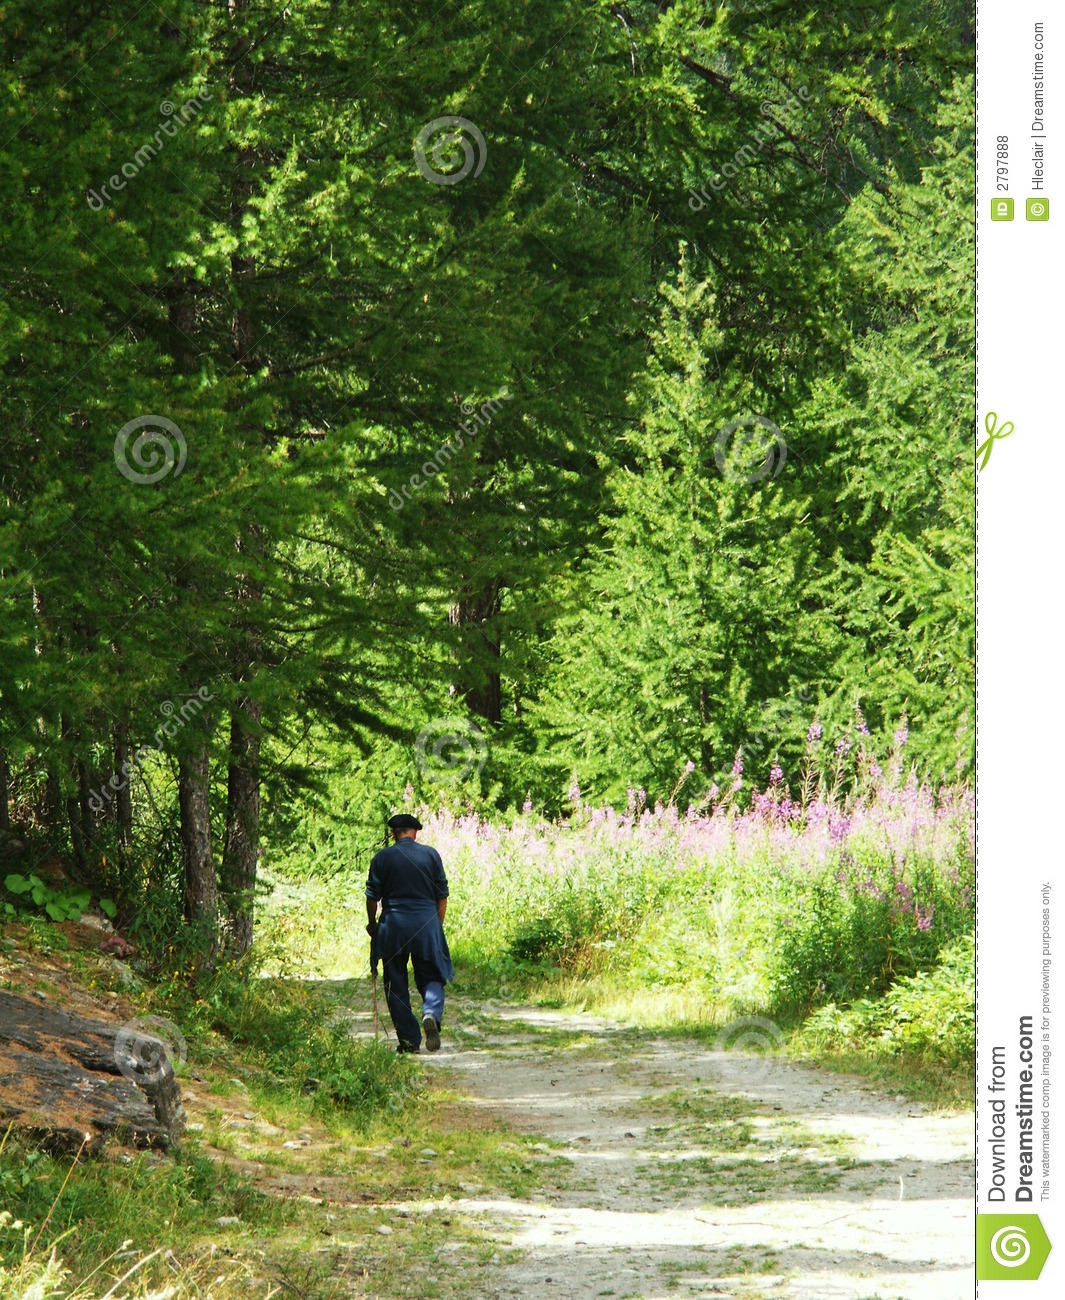 Alone 3d Wallpaper Walking Alone Royalty Free Stock Photos Image 2797888